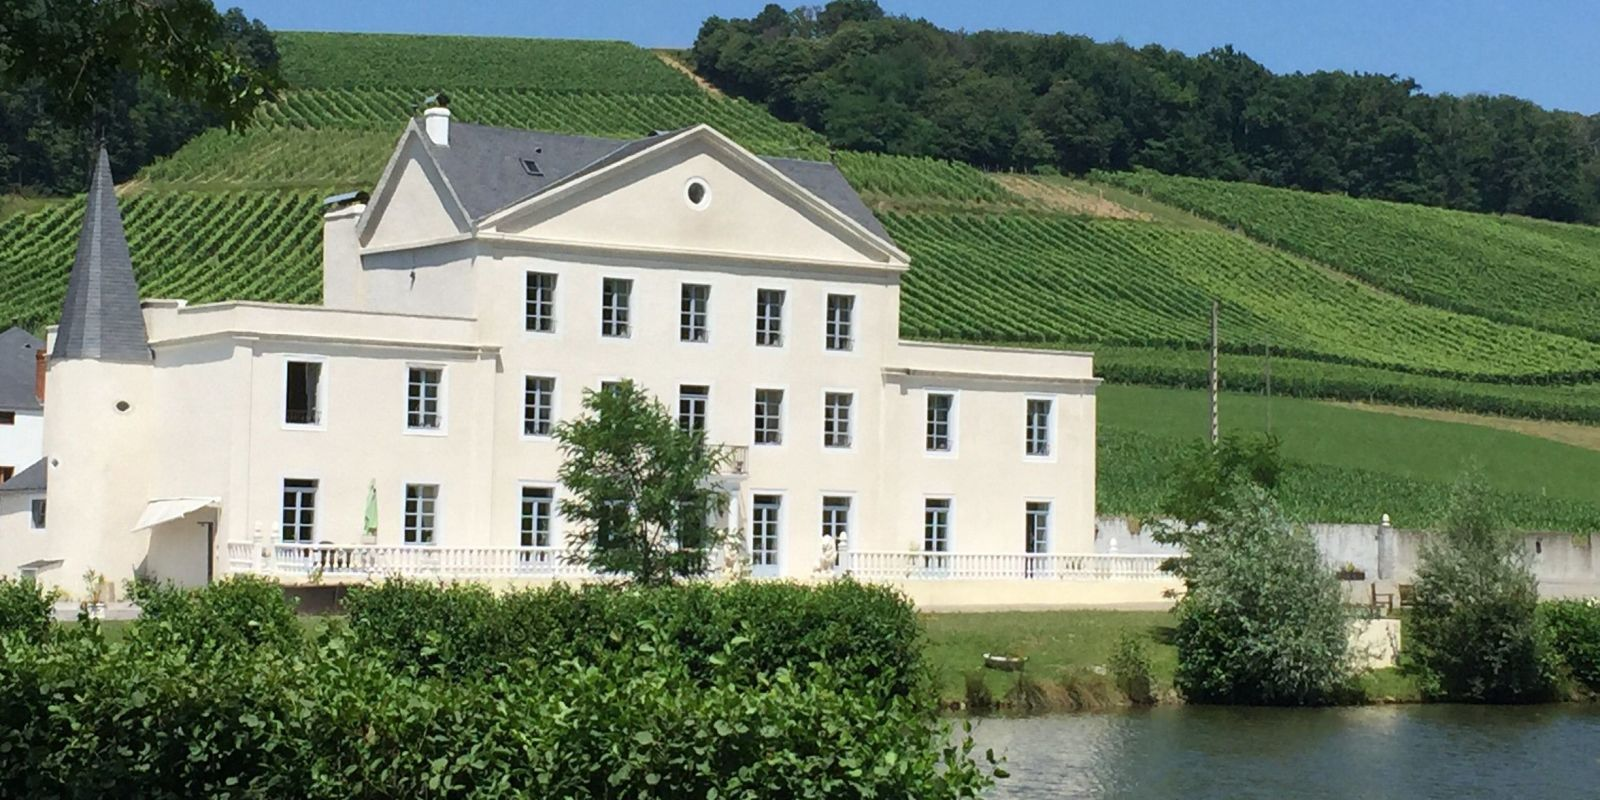 French Chateau Going Up For Auction With No Set Reserve Price